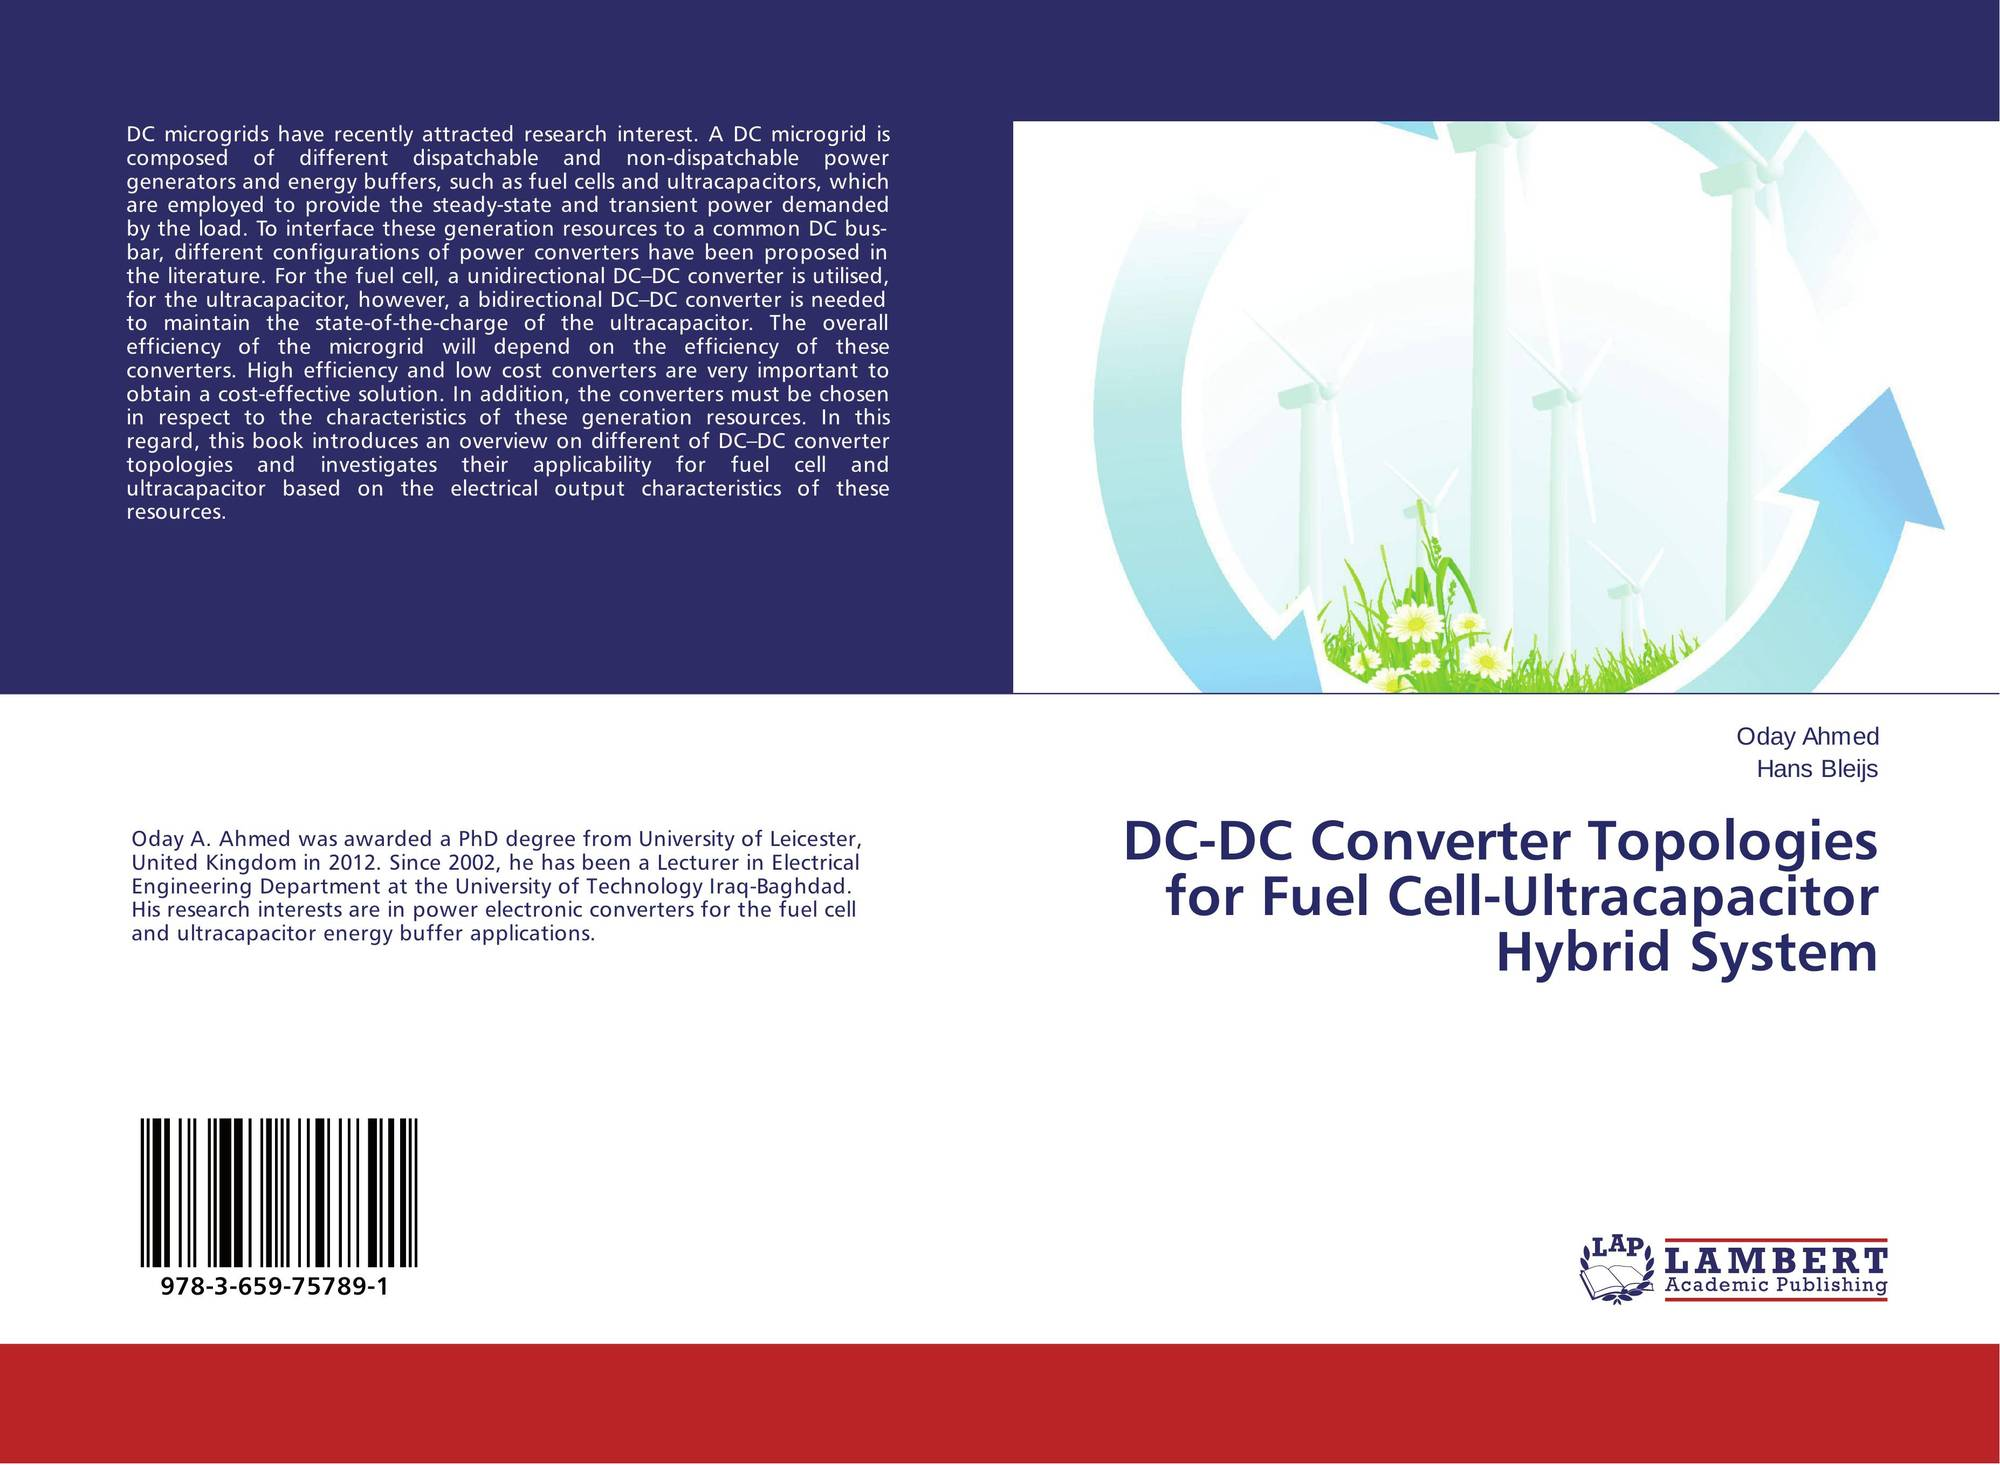 DC-DC Converter Topologies for Fuel Cell-Ultracapacitor Hybrid